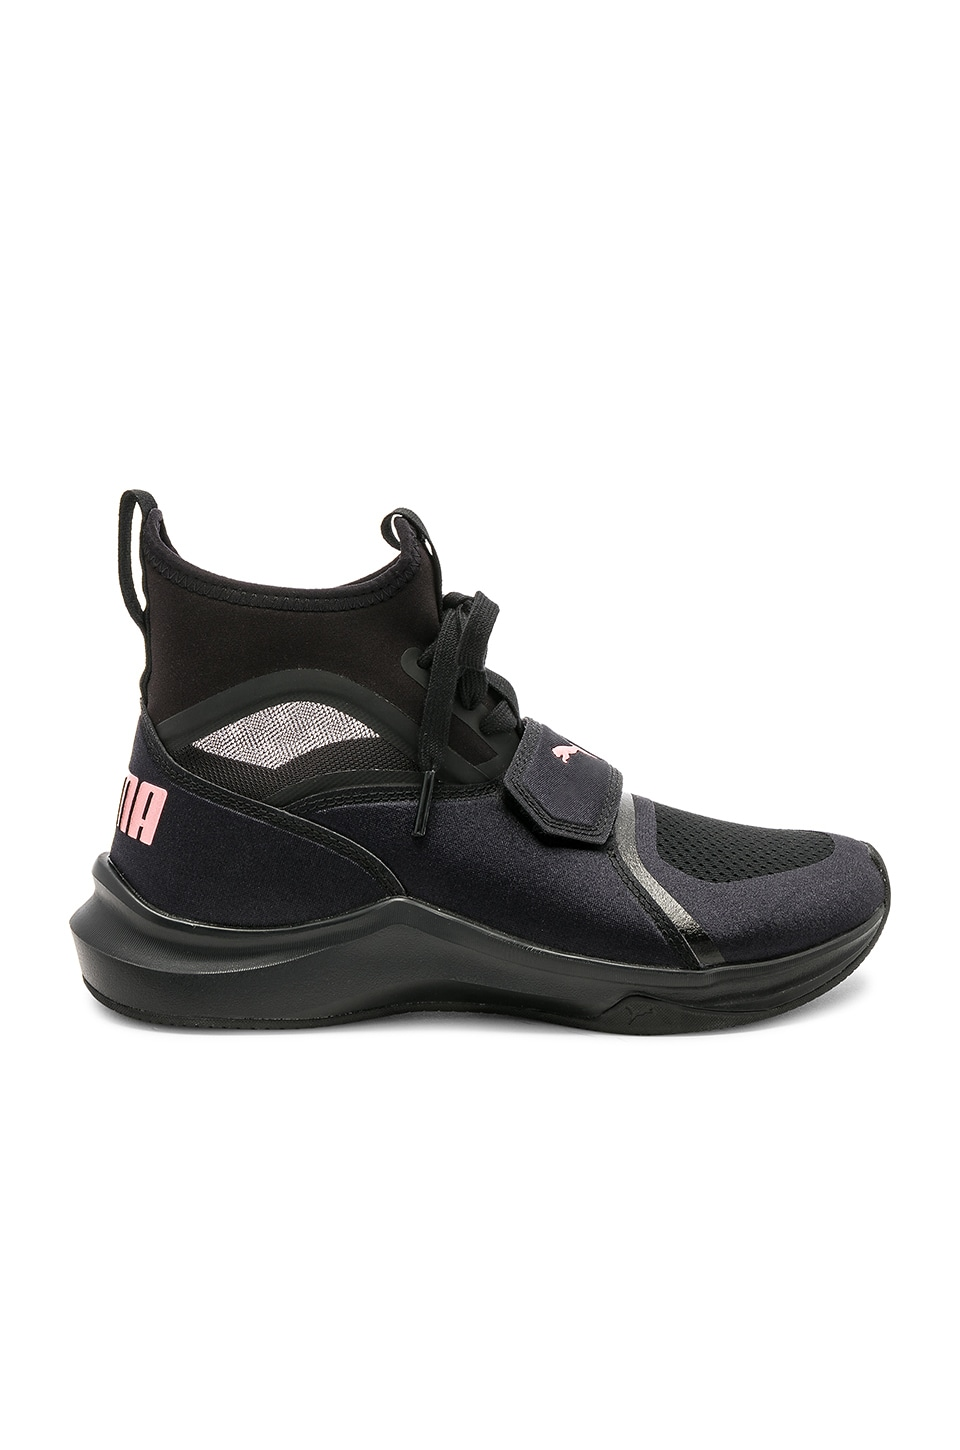 Sales promotion attractivedesigns quite nice Phenom Core Sneaker